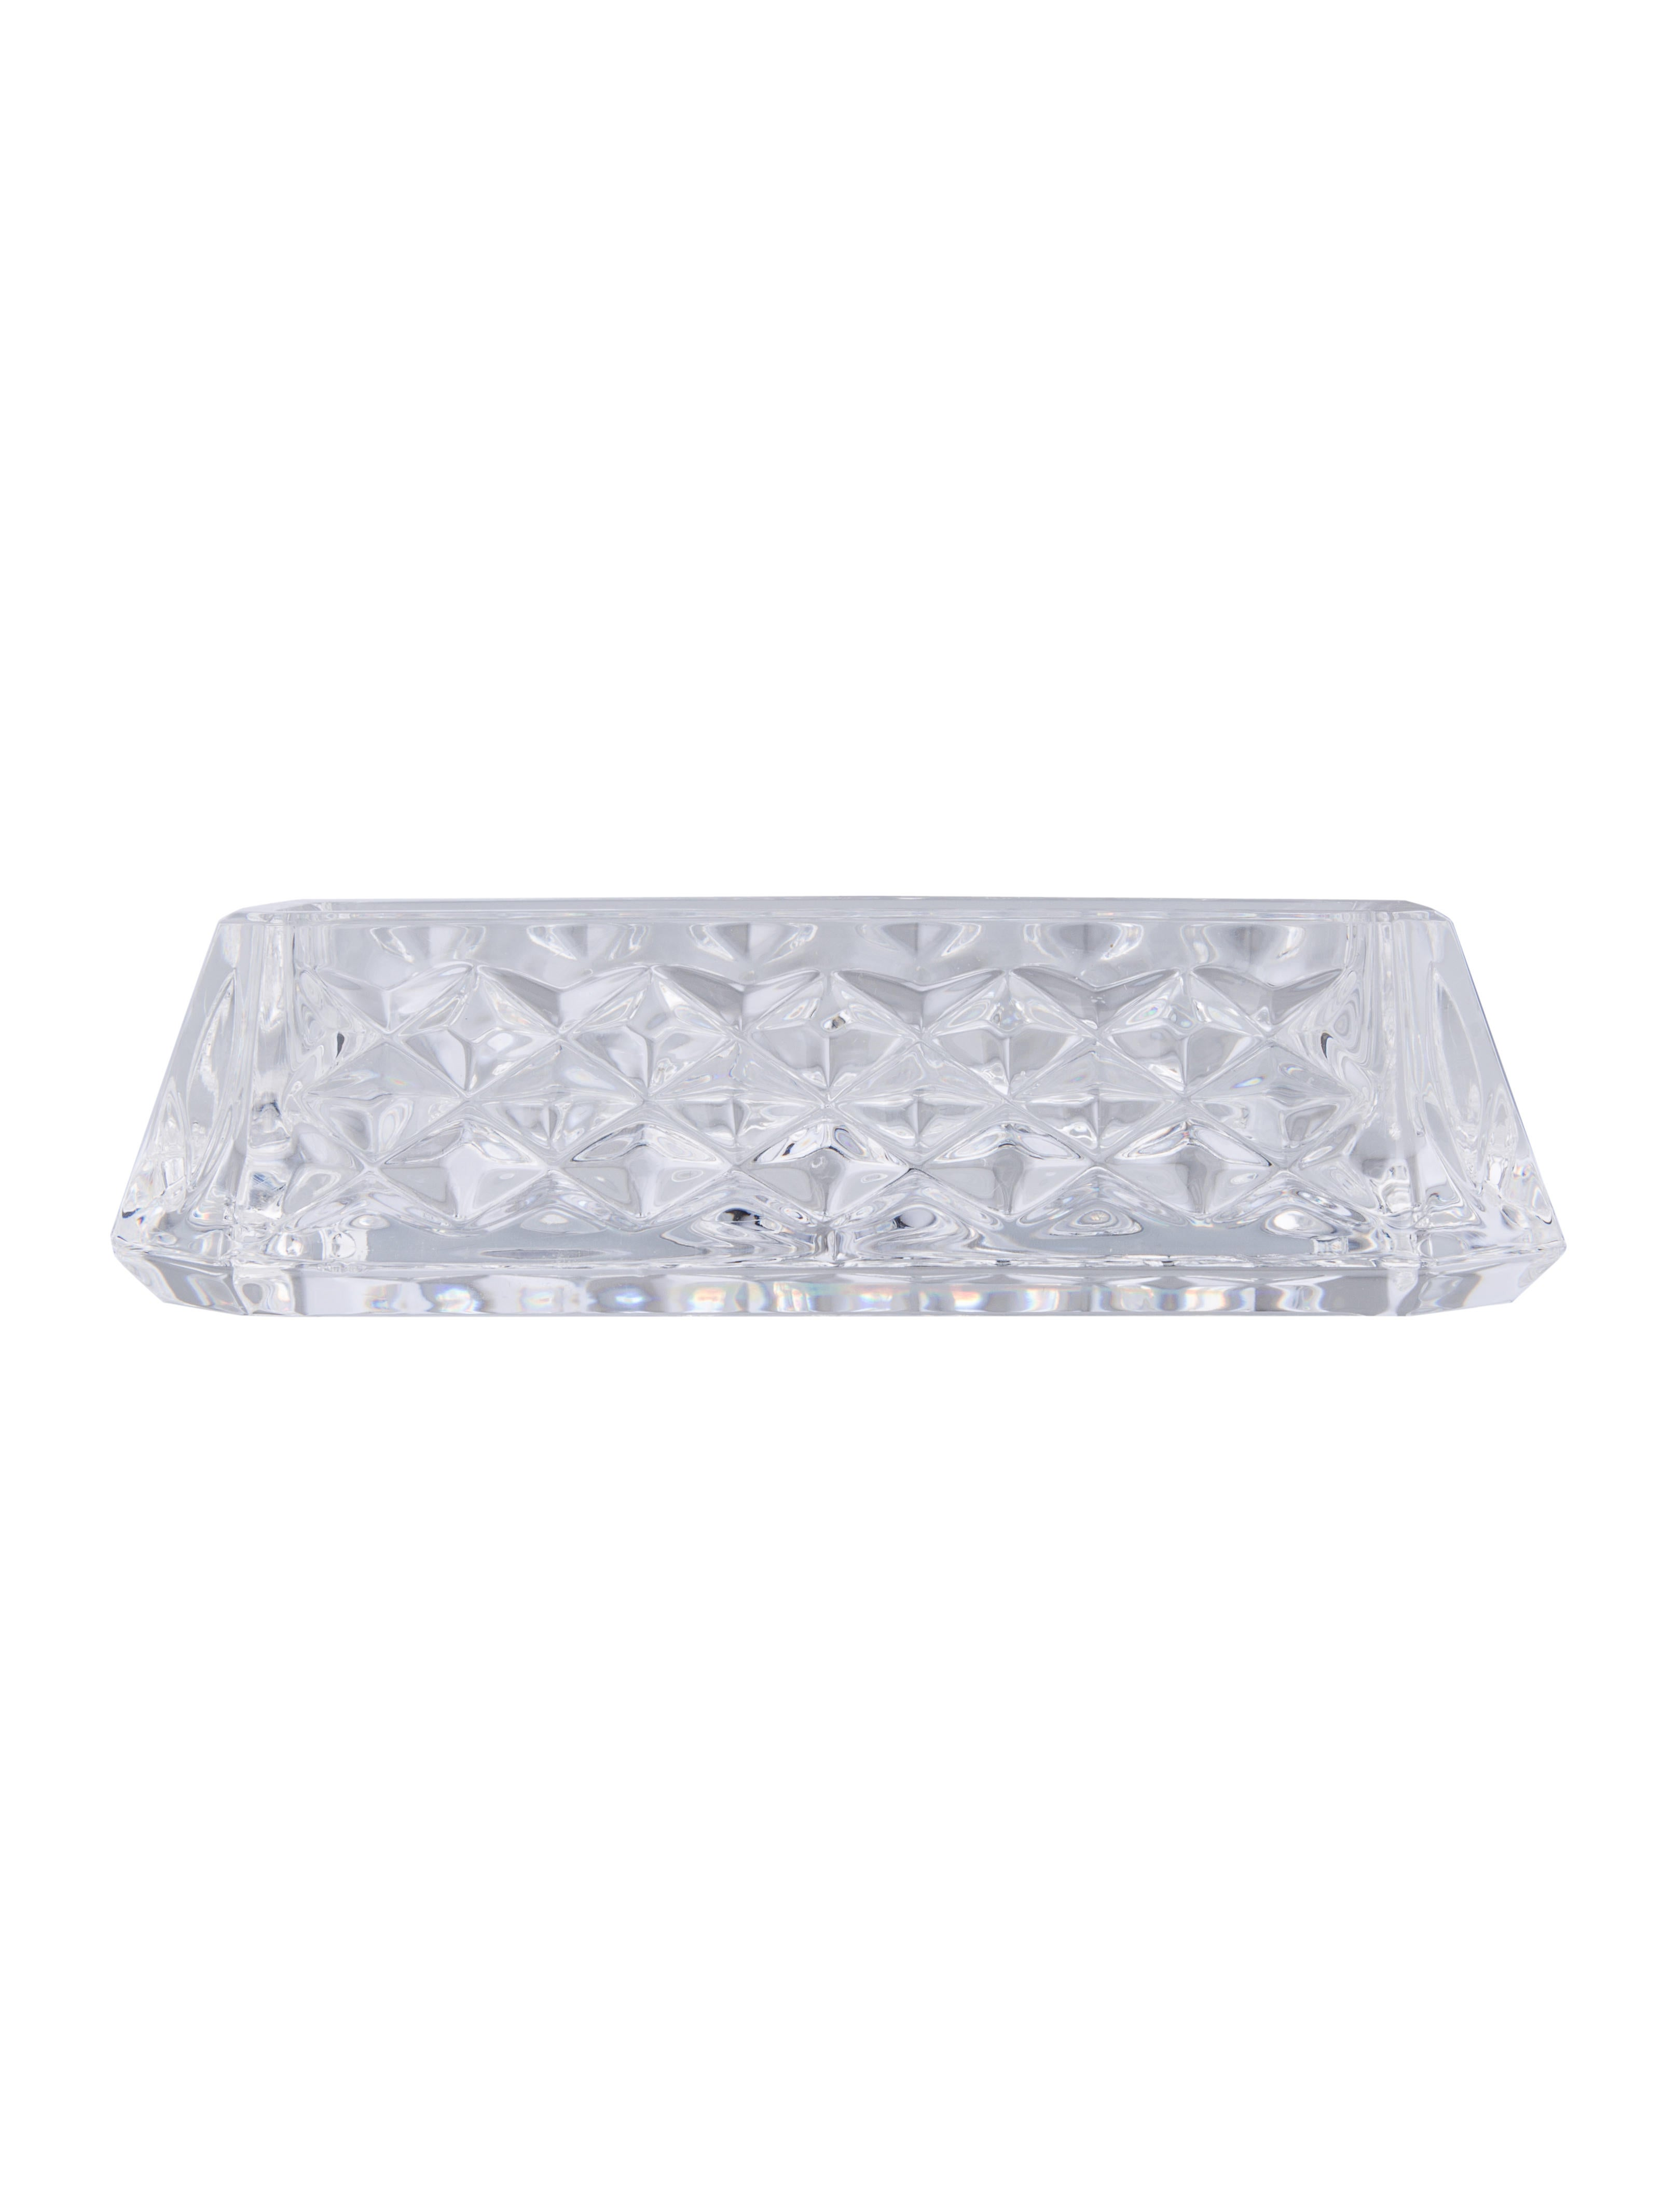 Waterford crystal westover business card holder decor and crystal westover business card holder colourmoves